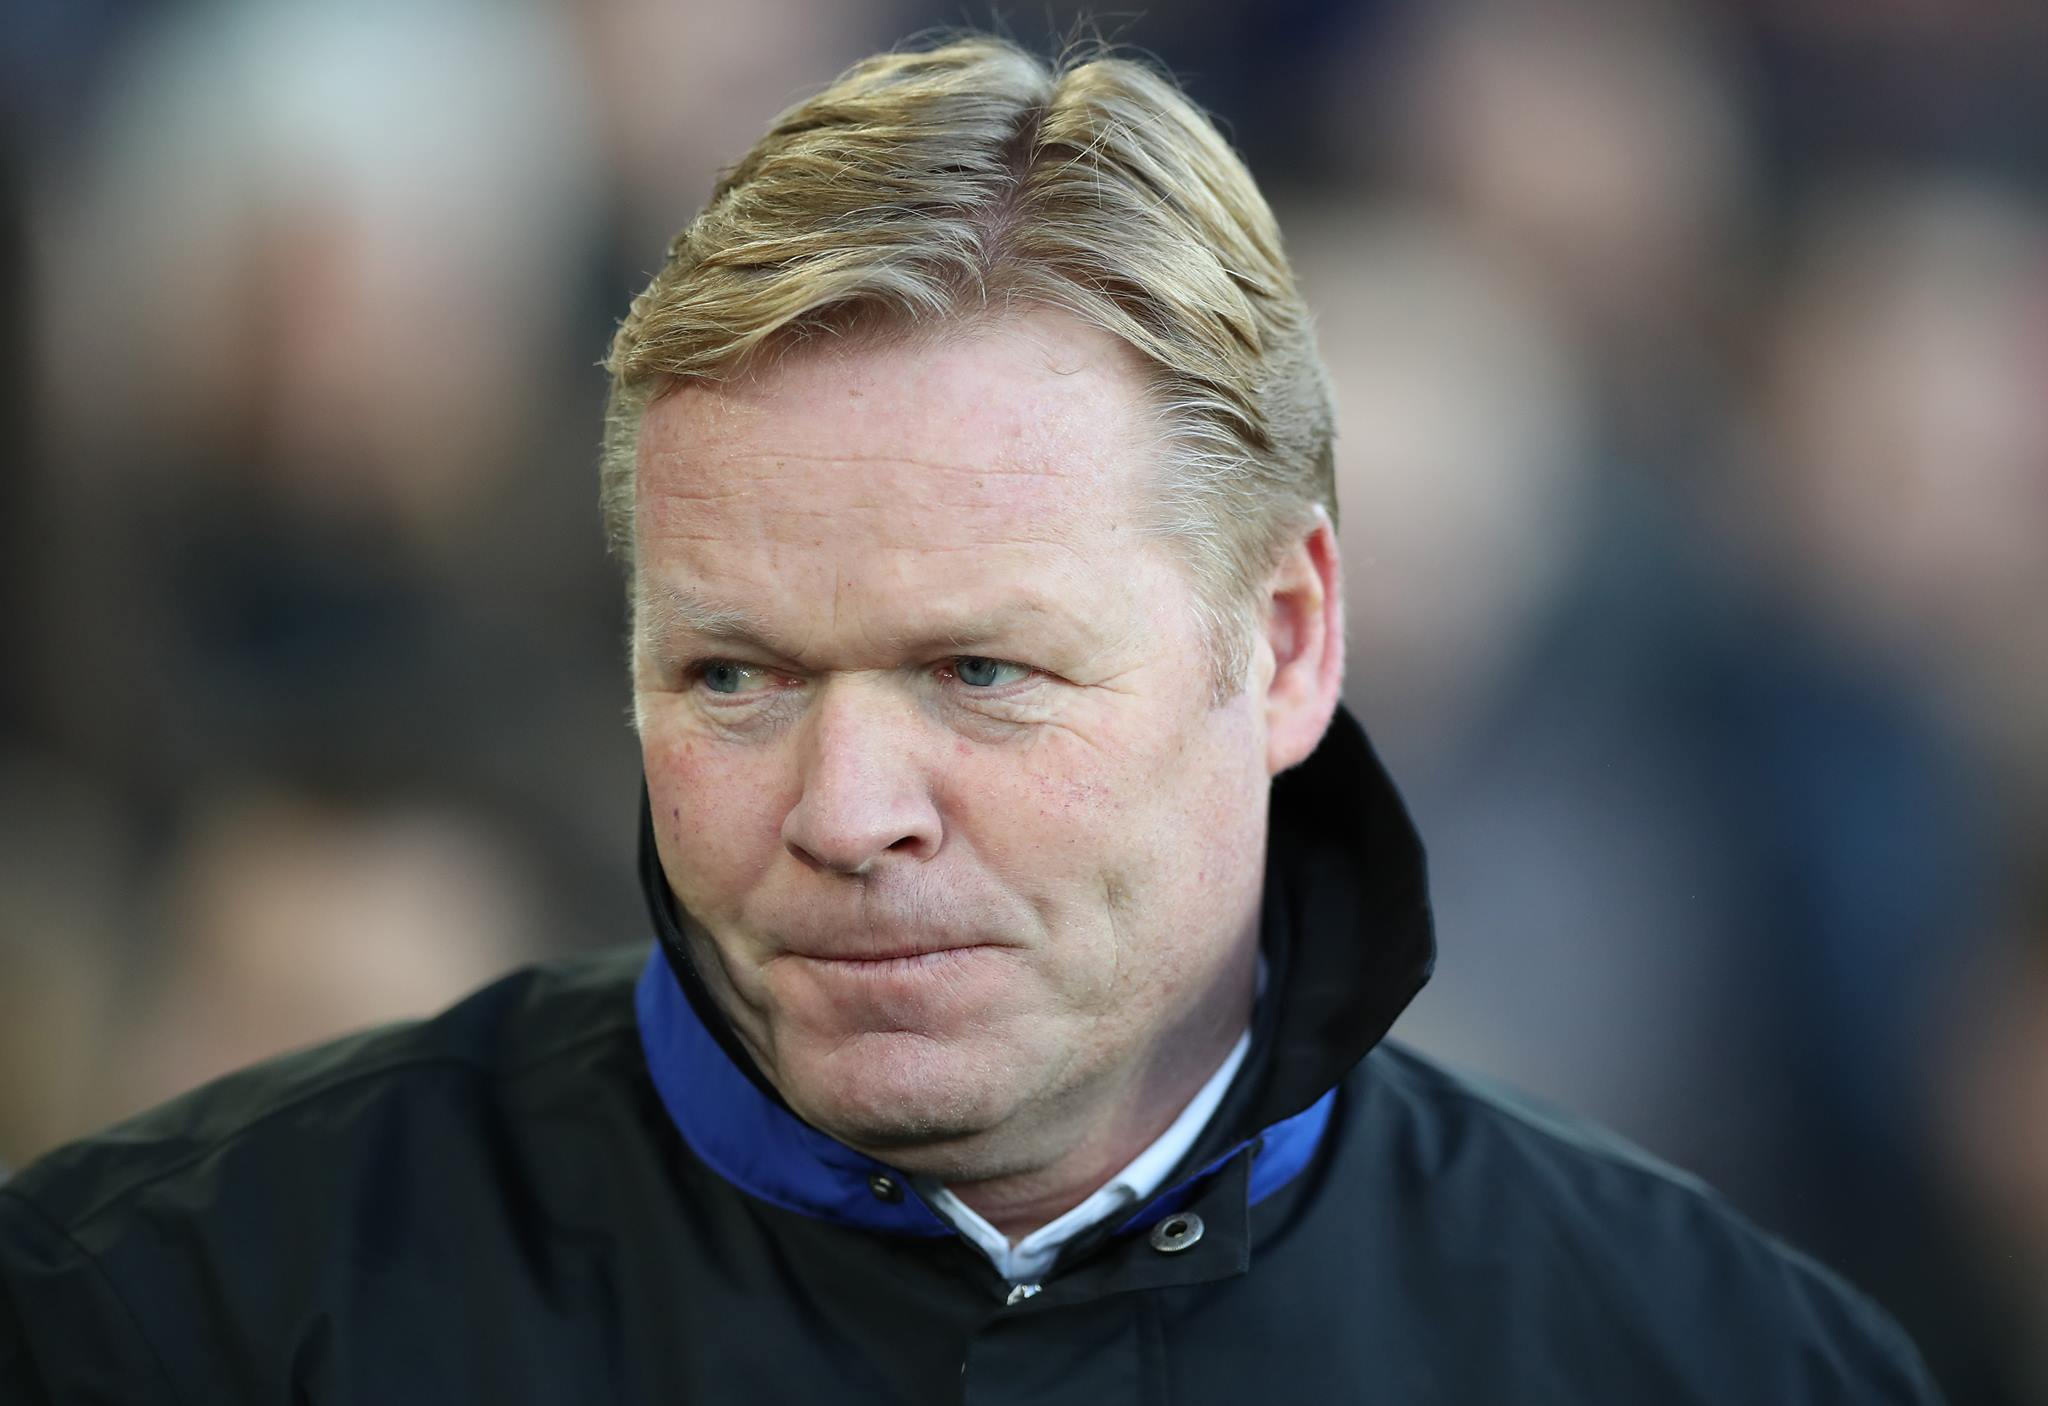 Sacked Everton boss Koeman: I never felt let down by Kenwright, Moshiri